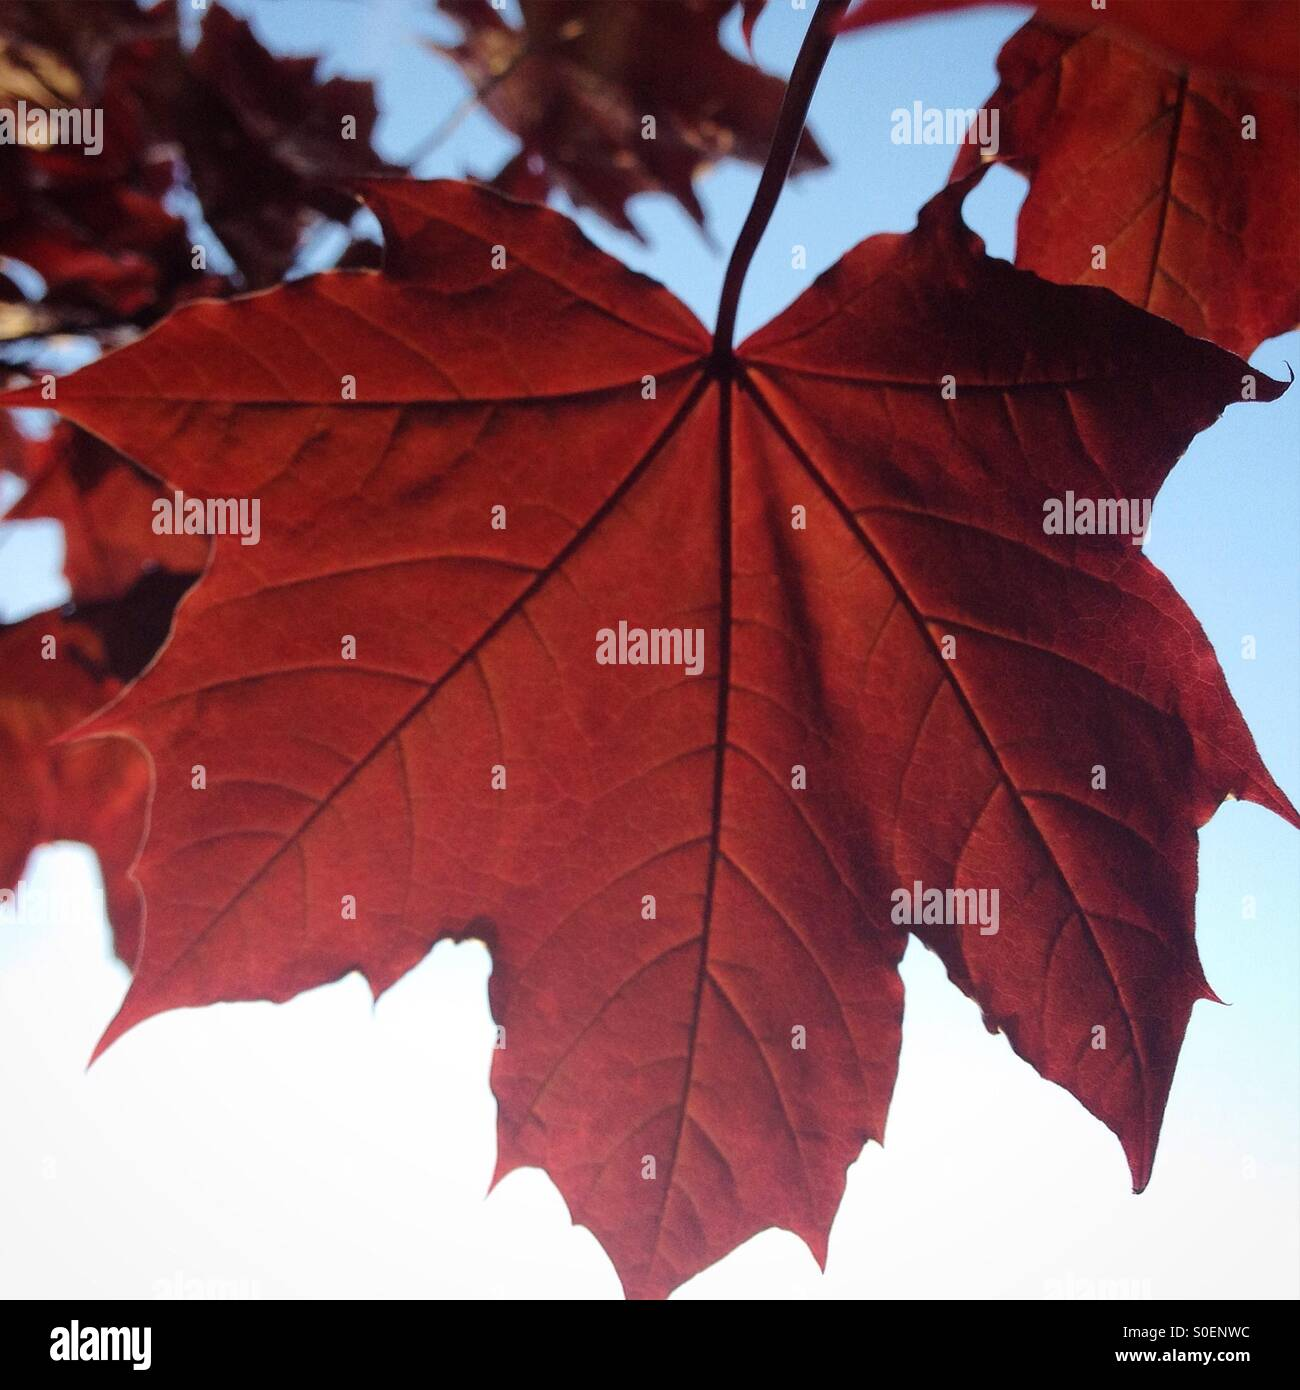 Feuille d'Acer contre le ciel bleu Photo Stock